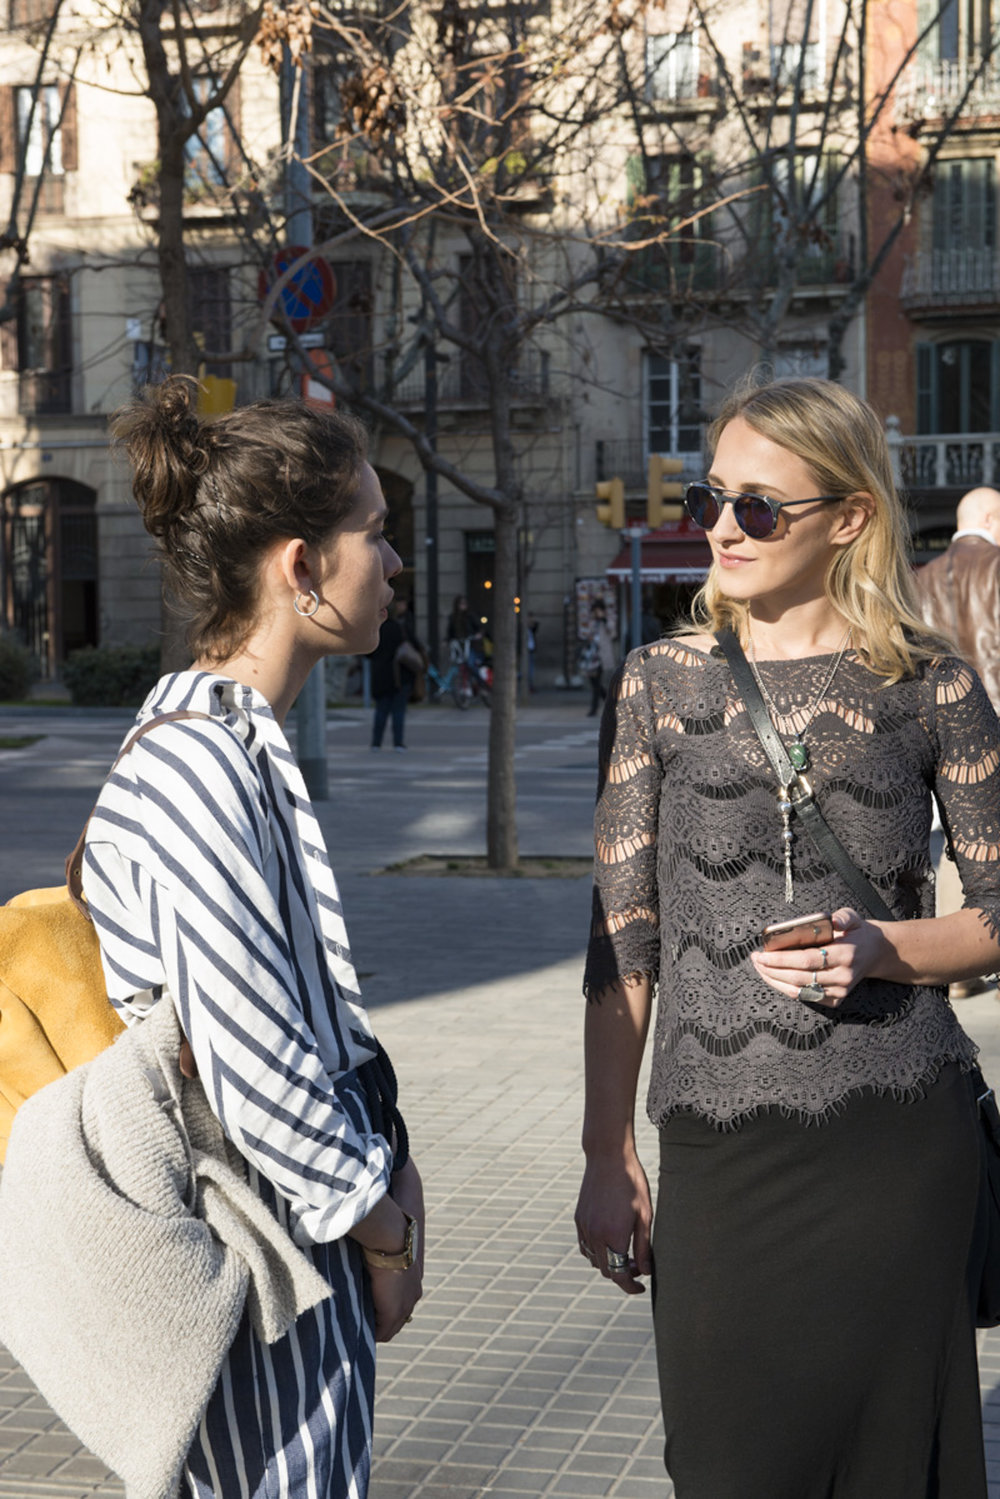 julia-eskins-here-&-there-magazine-interviewing-in-barcelona.jpg